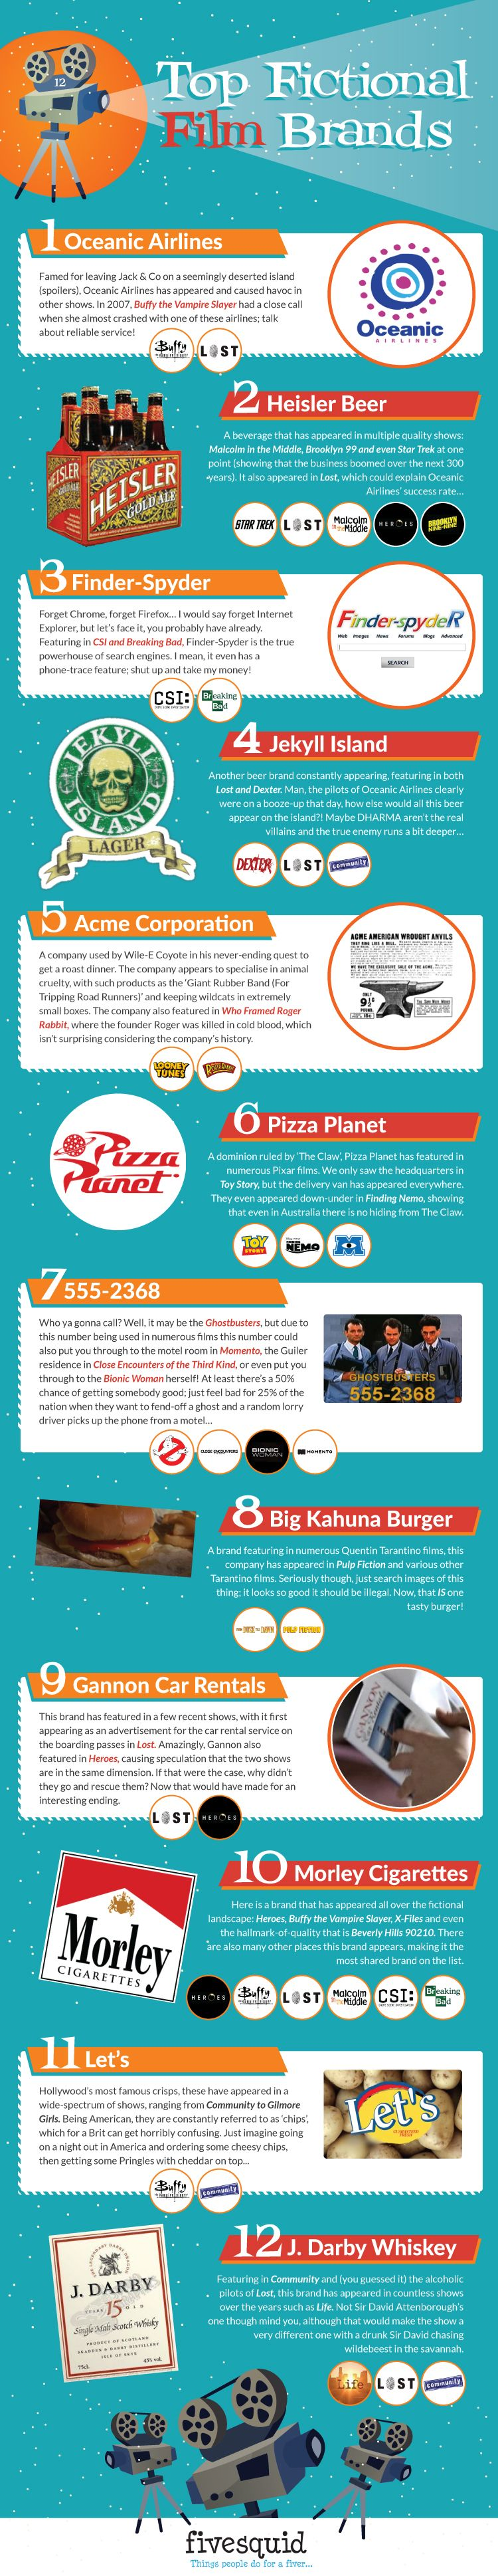 Top Fictional Brands in Film #infographic